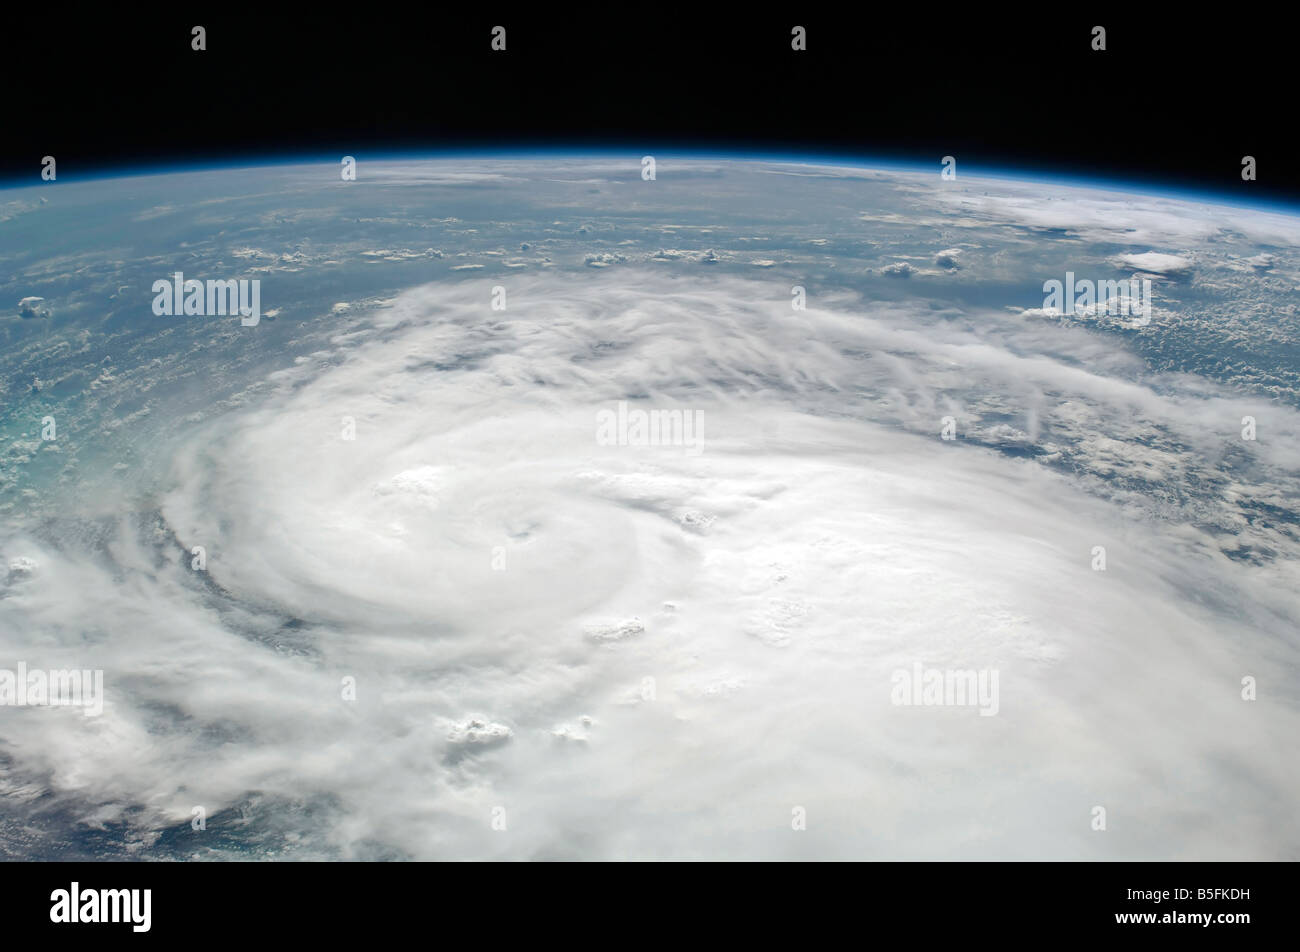 A westward-looking oblique view of Tropical Storm Fay. - Stock Image